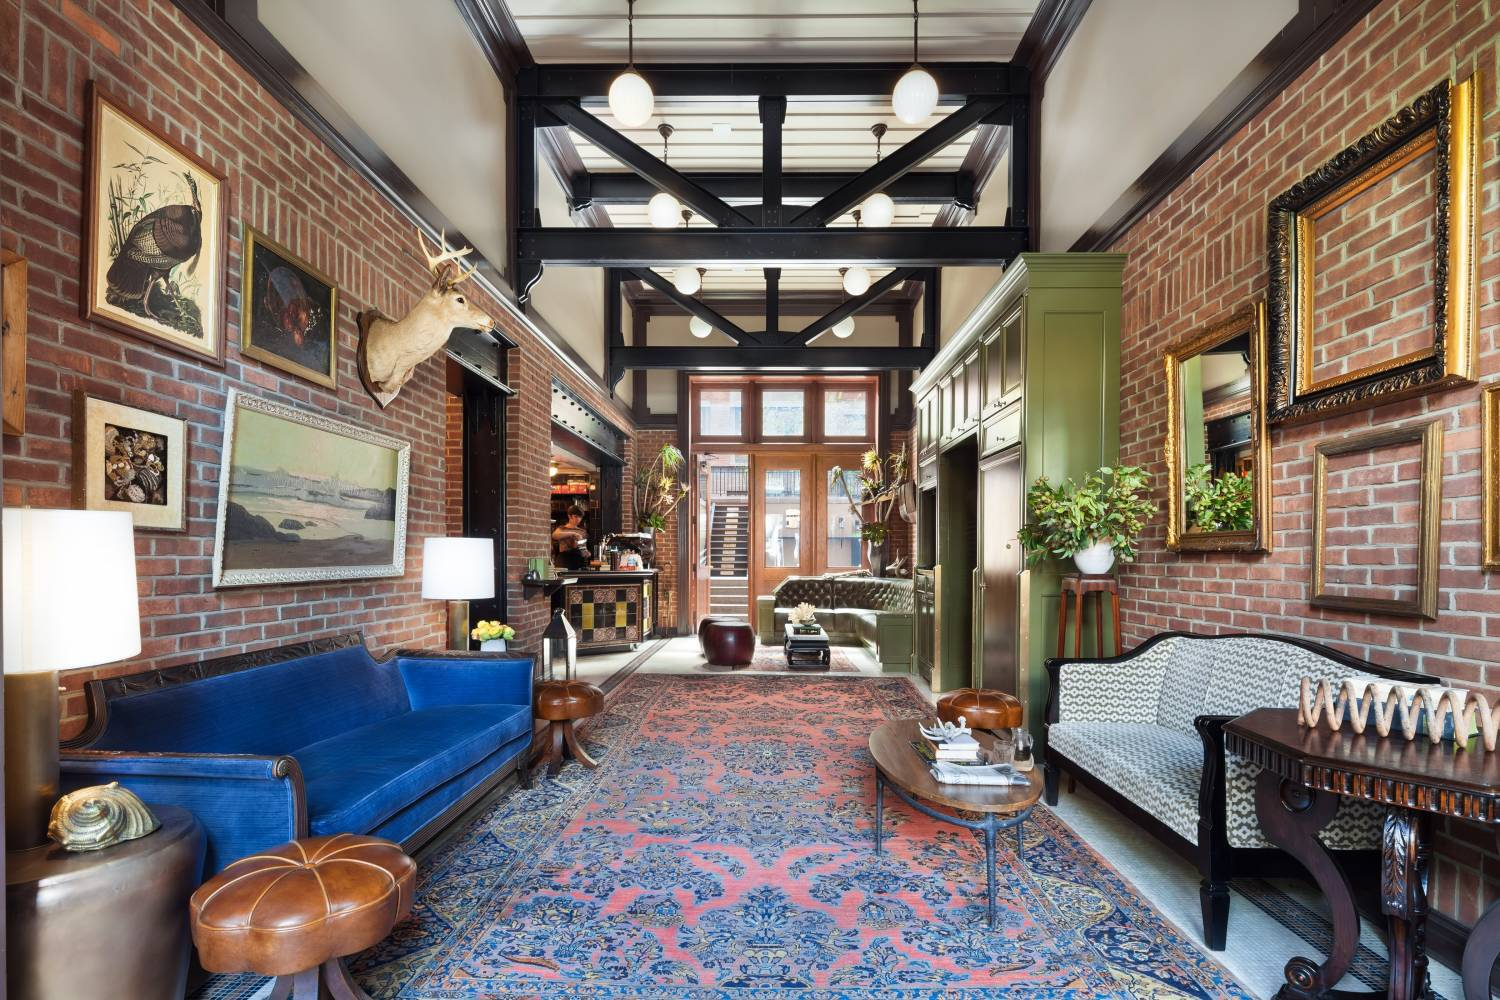 5 Amazing Hotels to Stay and Have a Celeb Sighting Experience  5 Amazing Hotels to Stay and Have a Celeb Sighting Experience 5 Amazing Hotels to Stay and Have a Celeb Sighting Experience highlinehotel courtesy 03  x large 1500 1000 70 c1